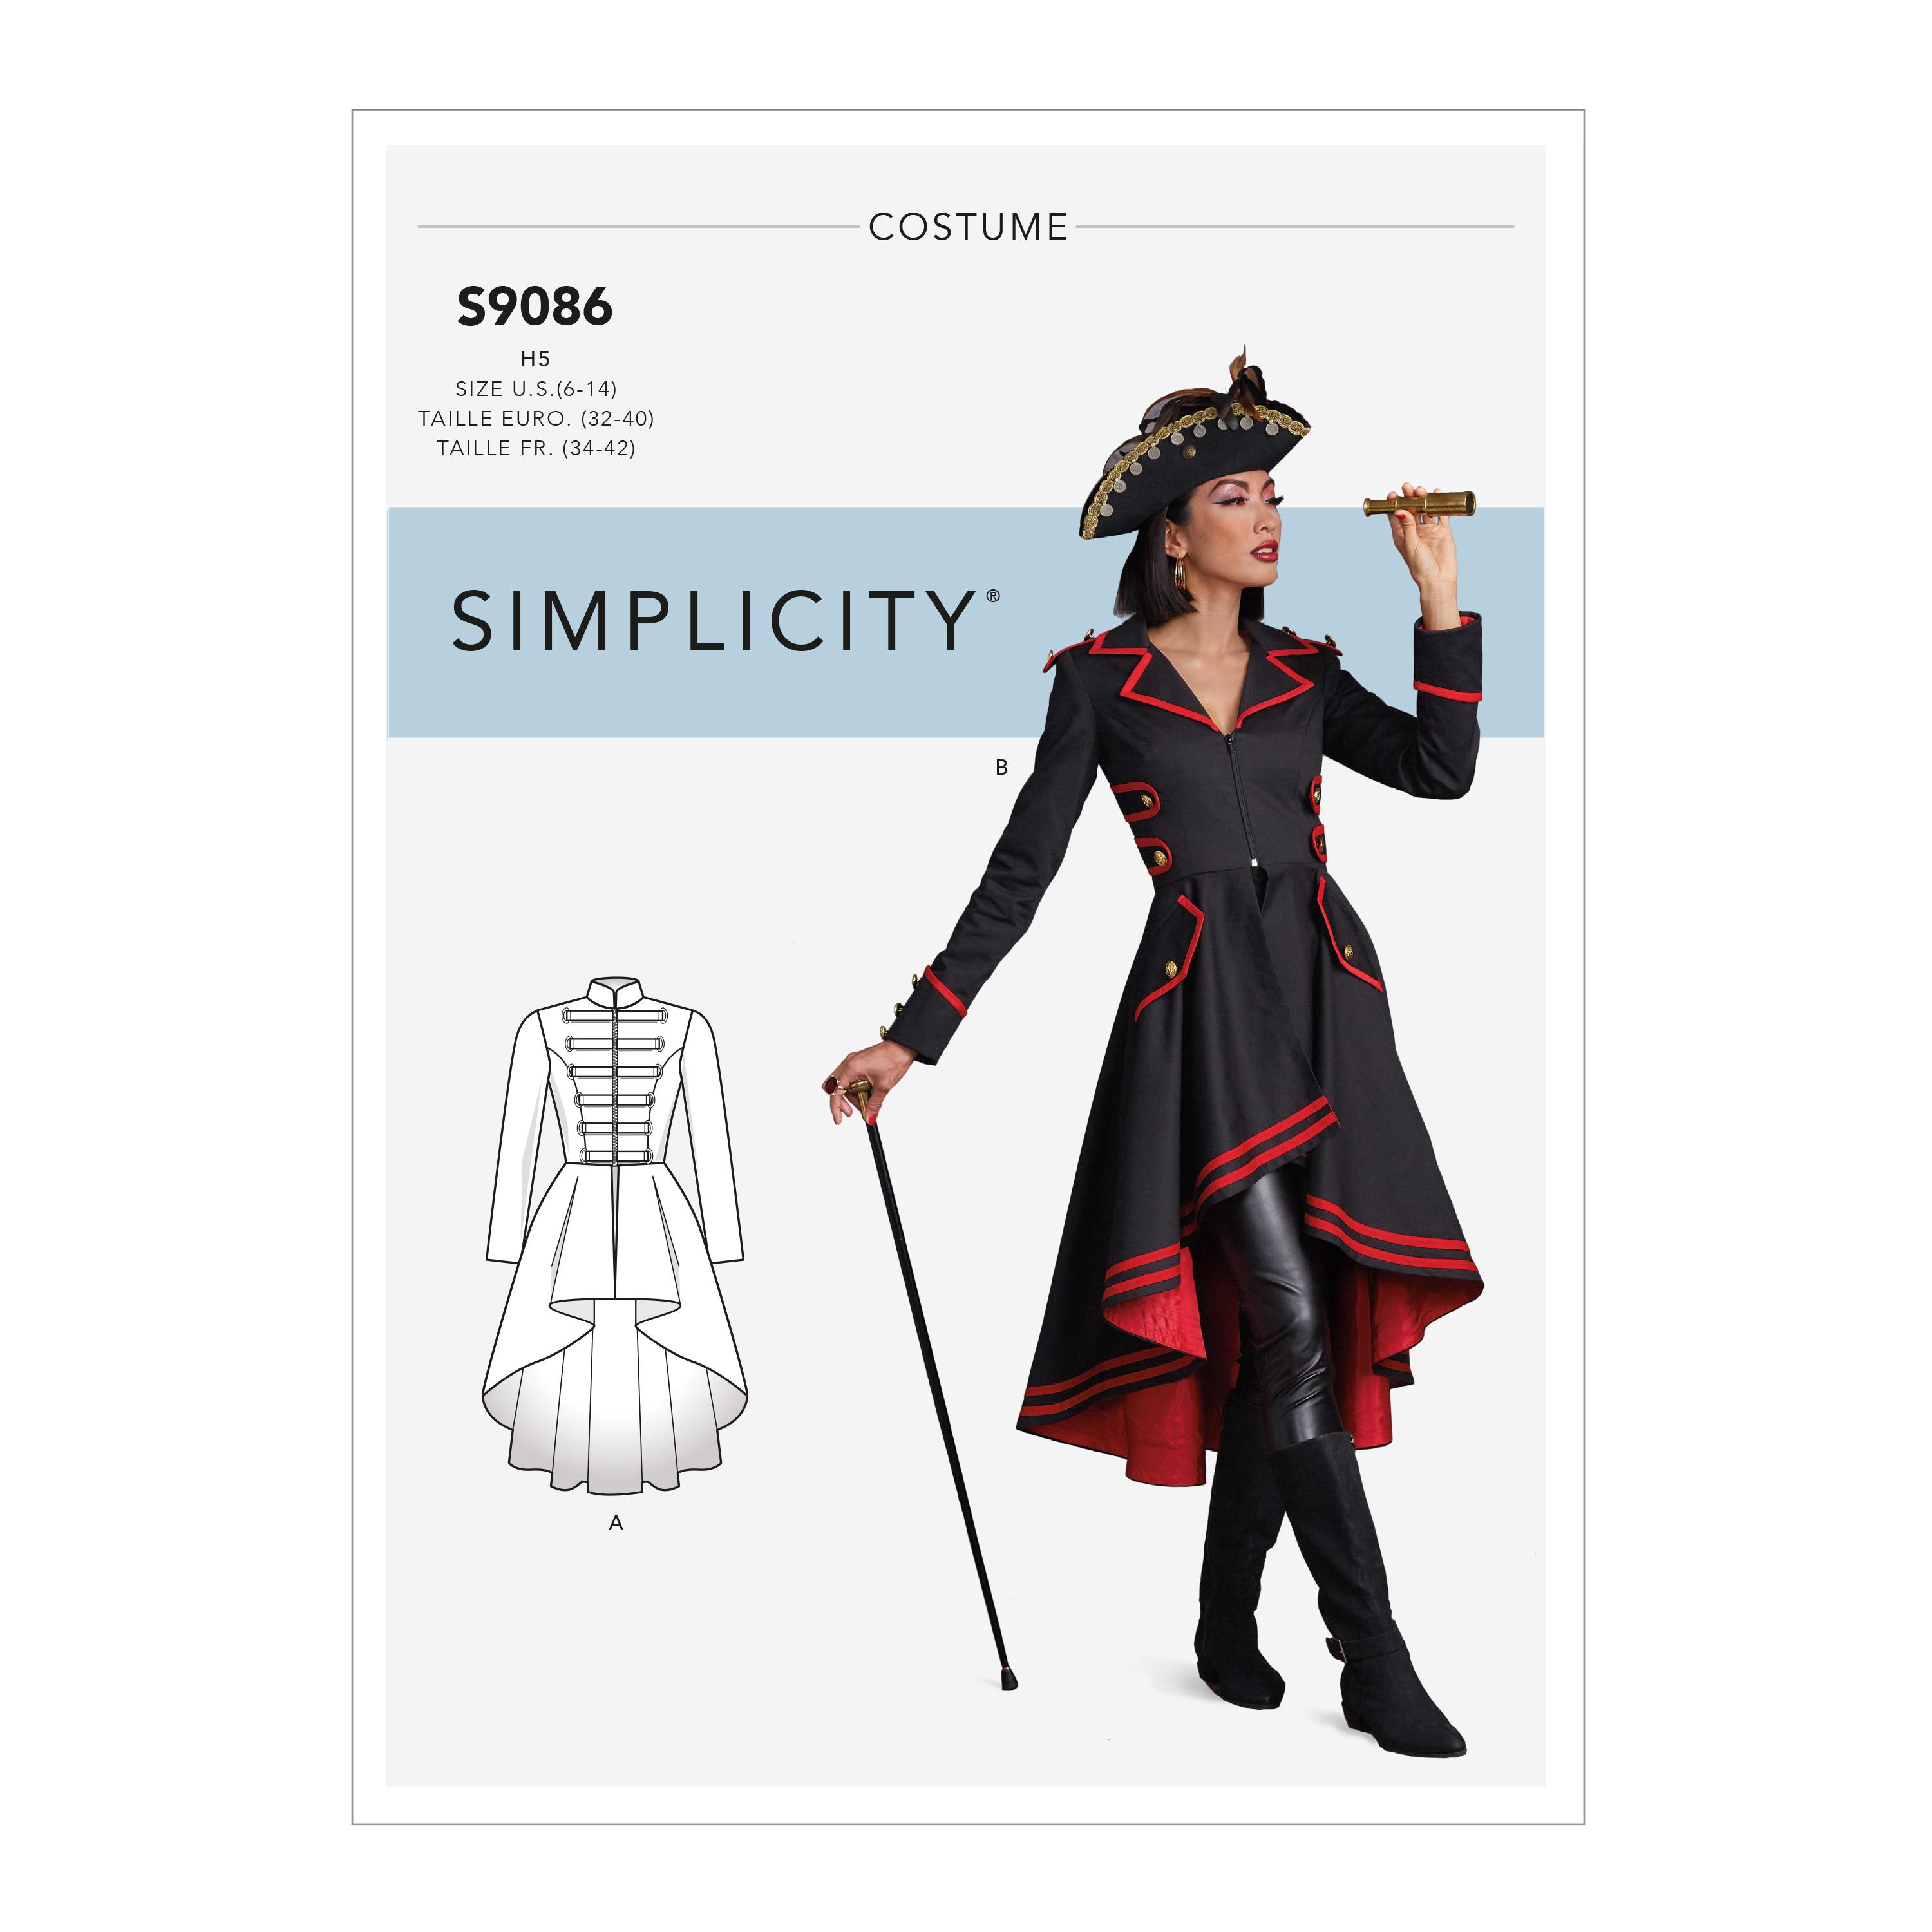 Simplicity S9086 Misses' Steampunk Costume Coats